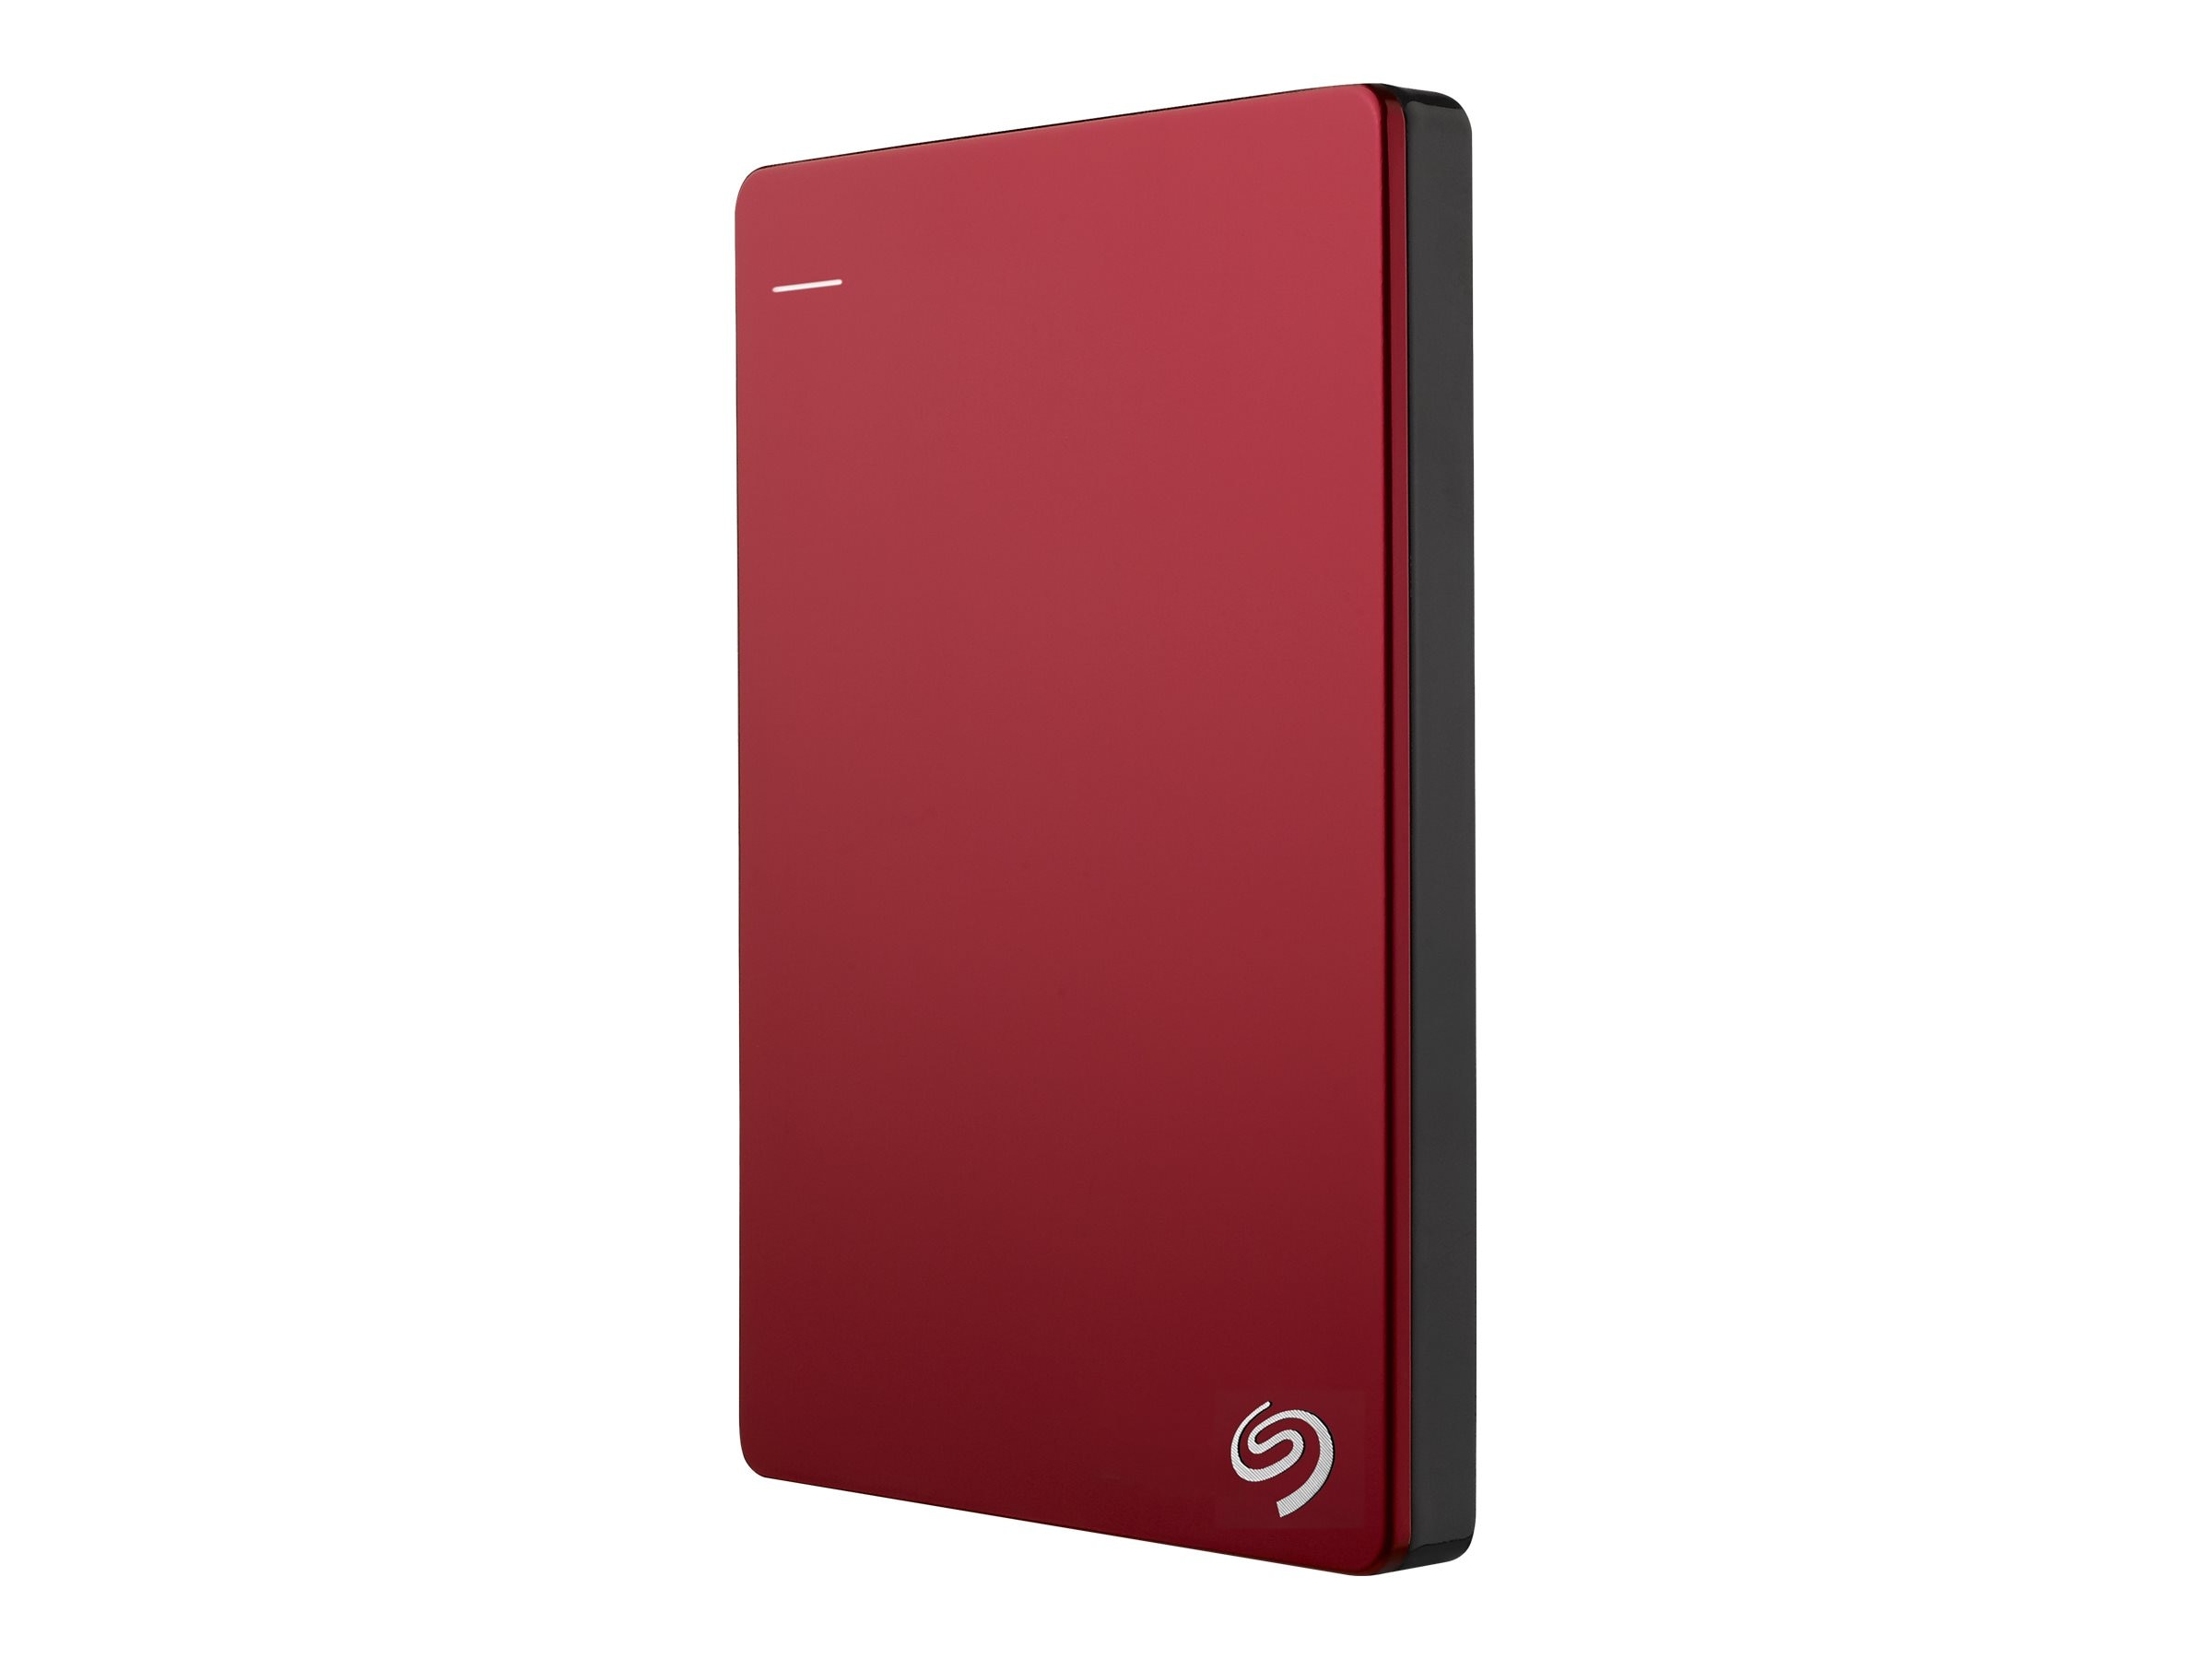 Seagate 1TB Backup Plus USB 3.0 Slim Portable Hard Drive - Red, STDR1000103